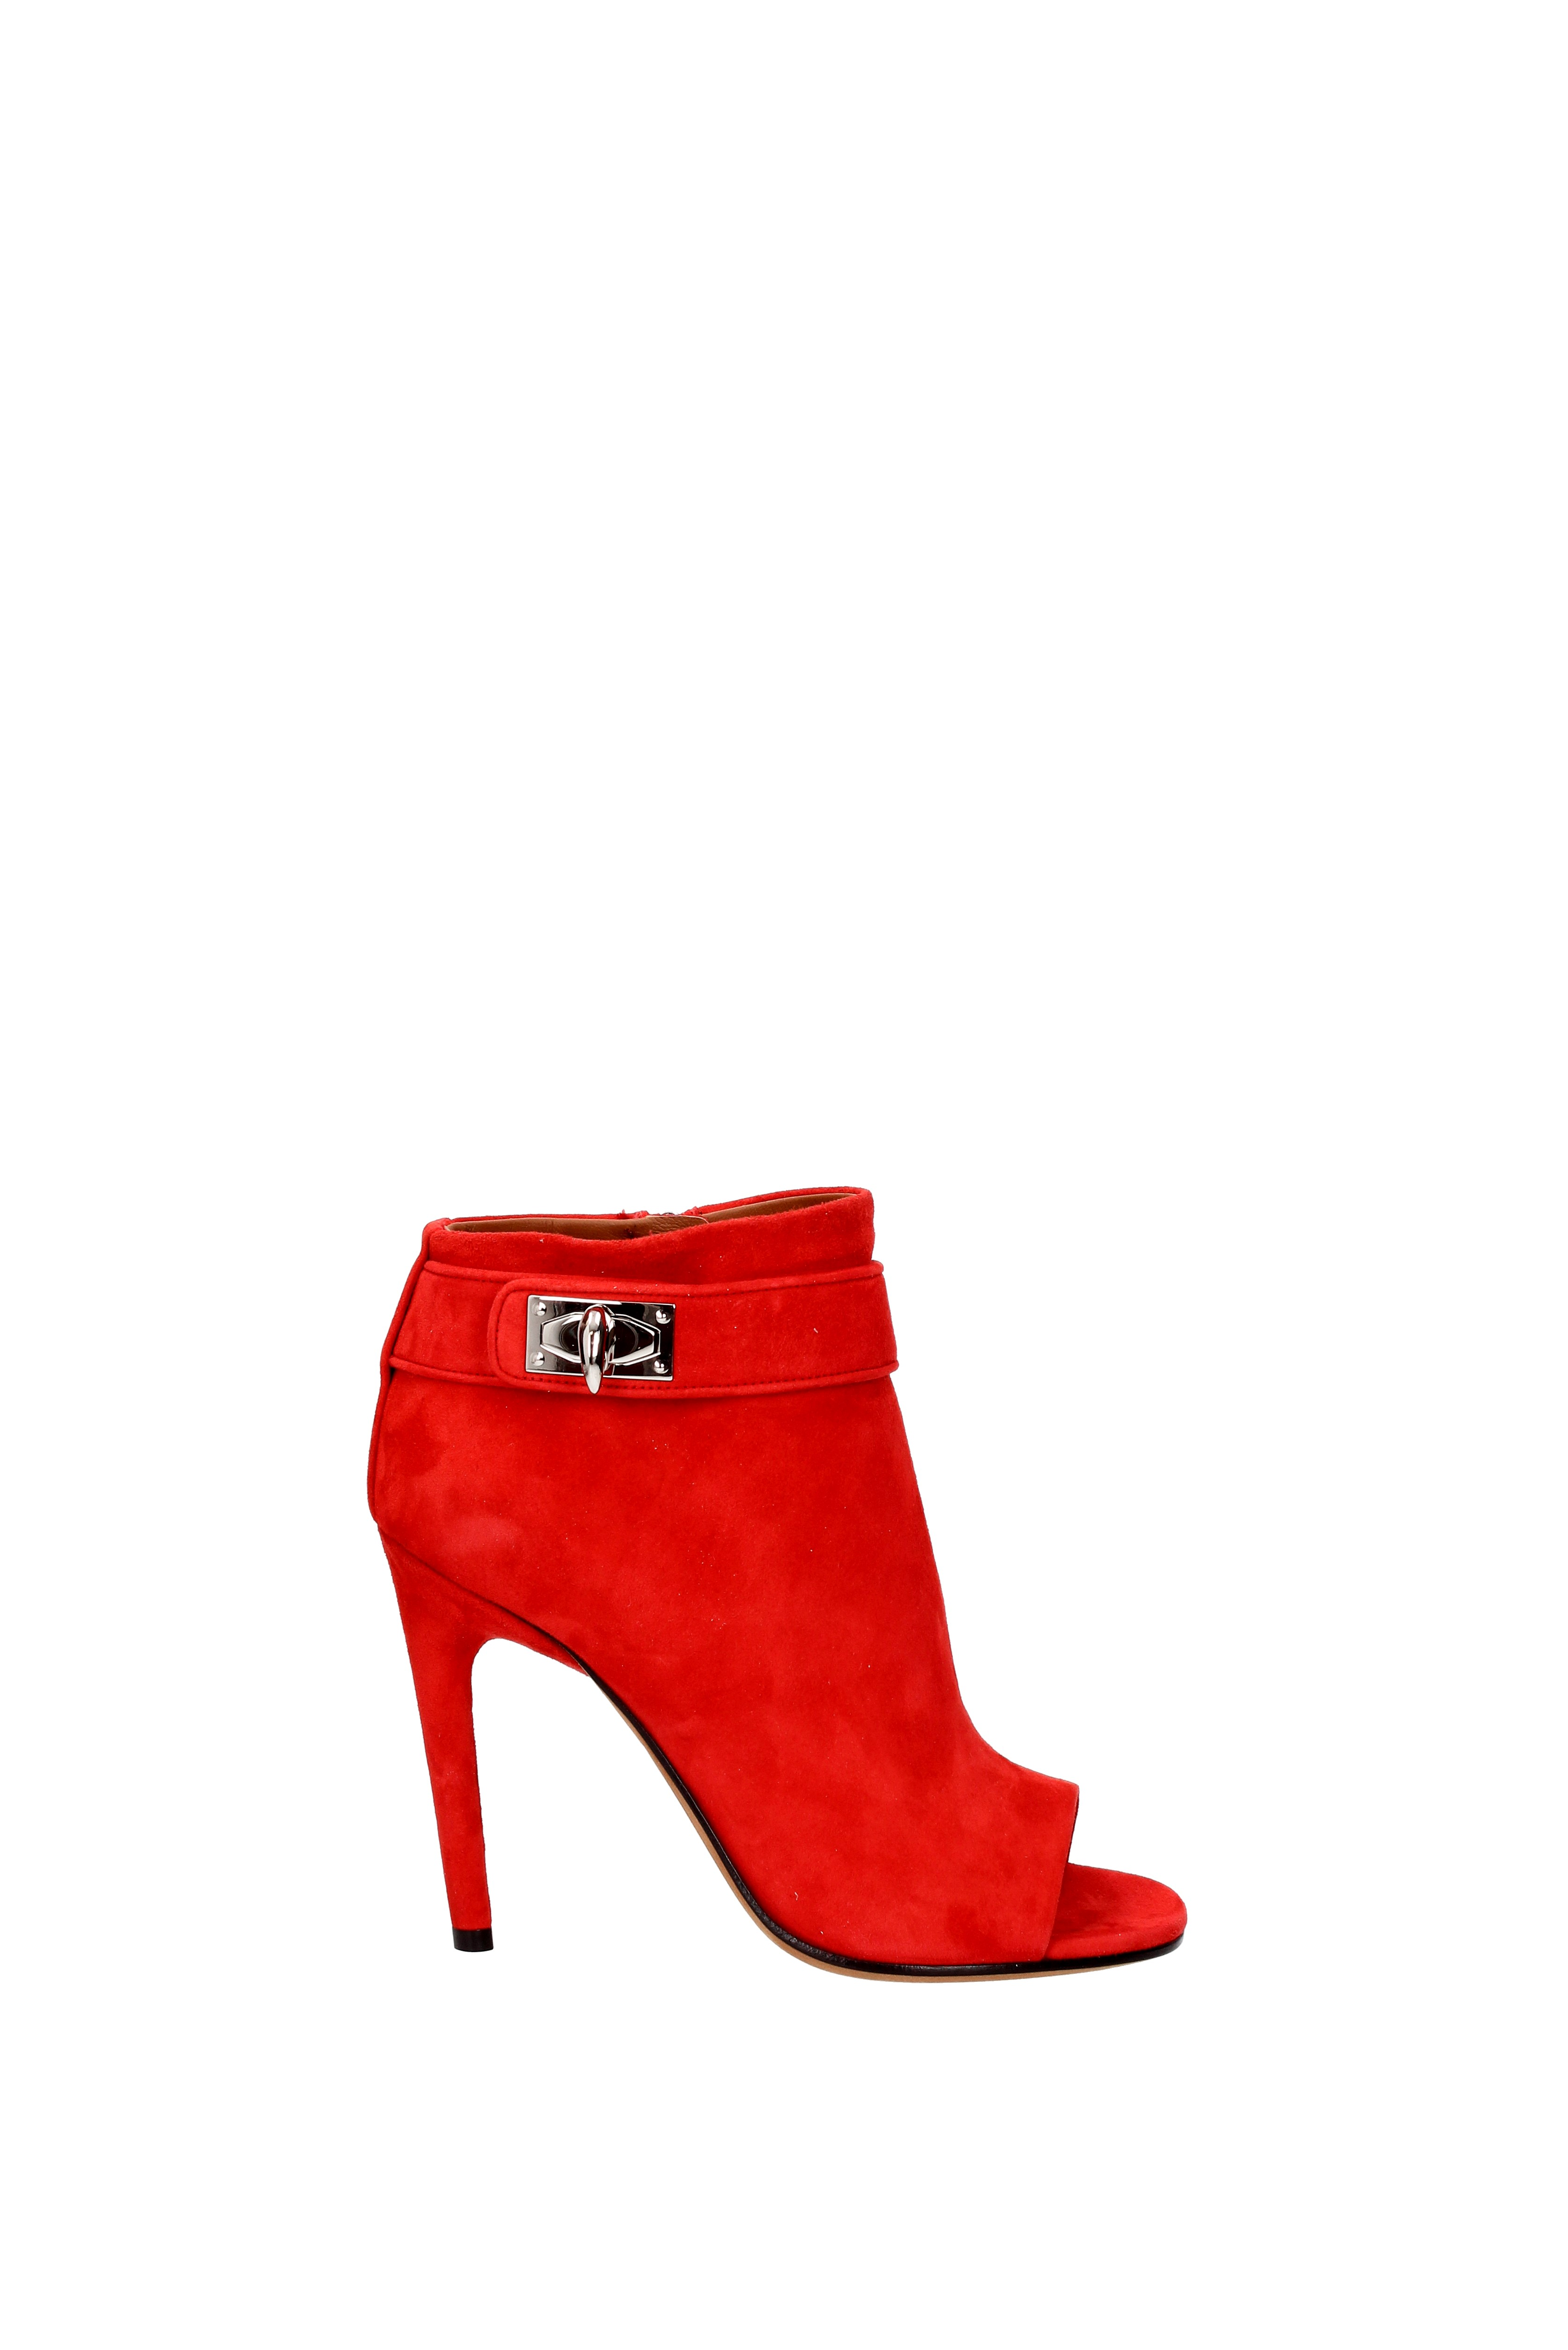 Ankle Ankle Ankle Stiefel Givenchy damen - Suede (BE08671040) 8e09c3